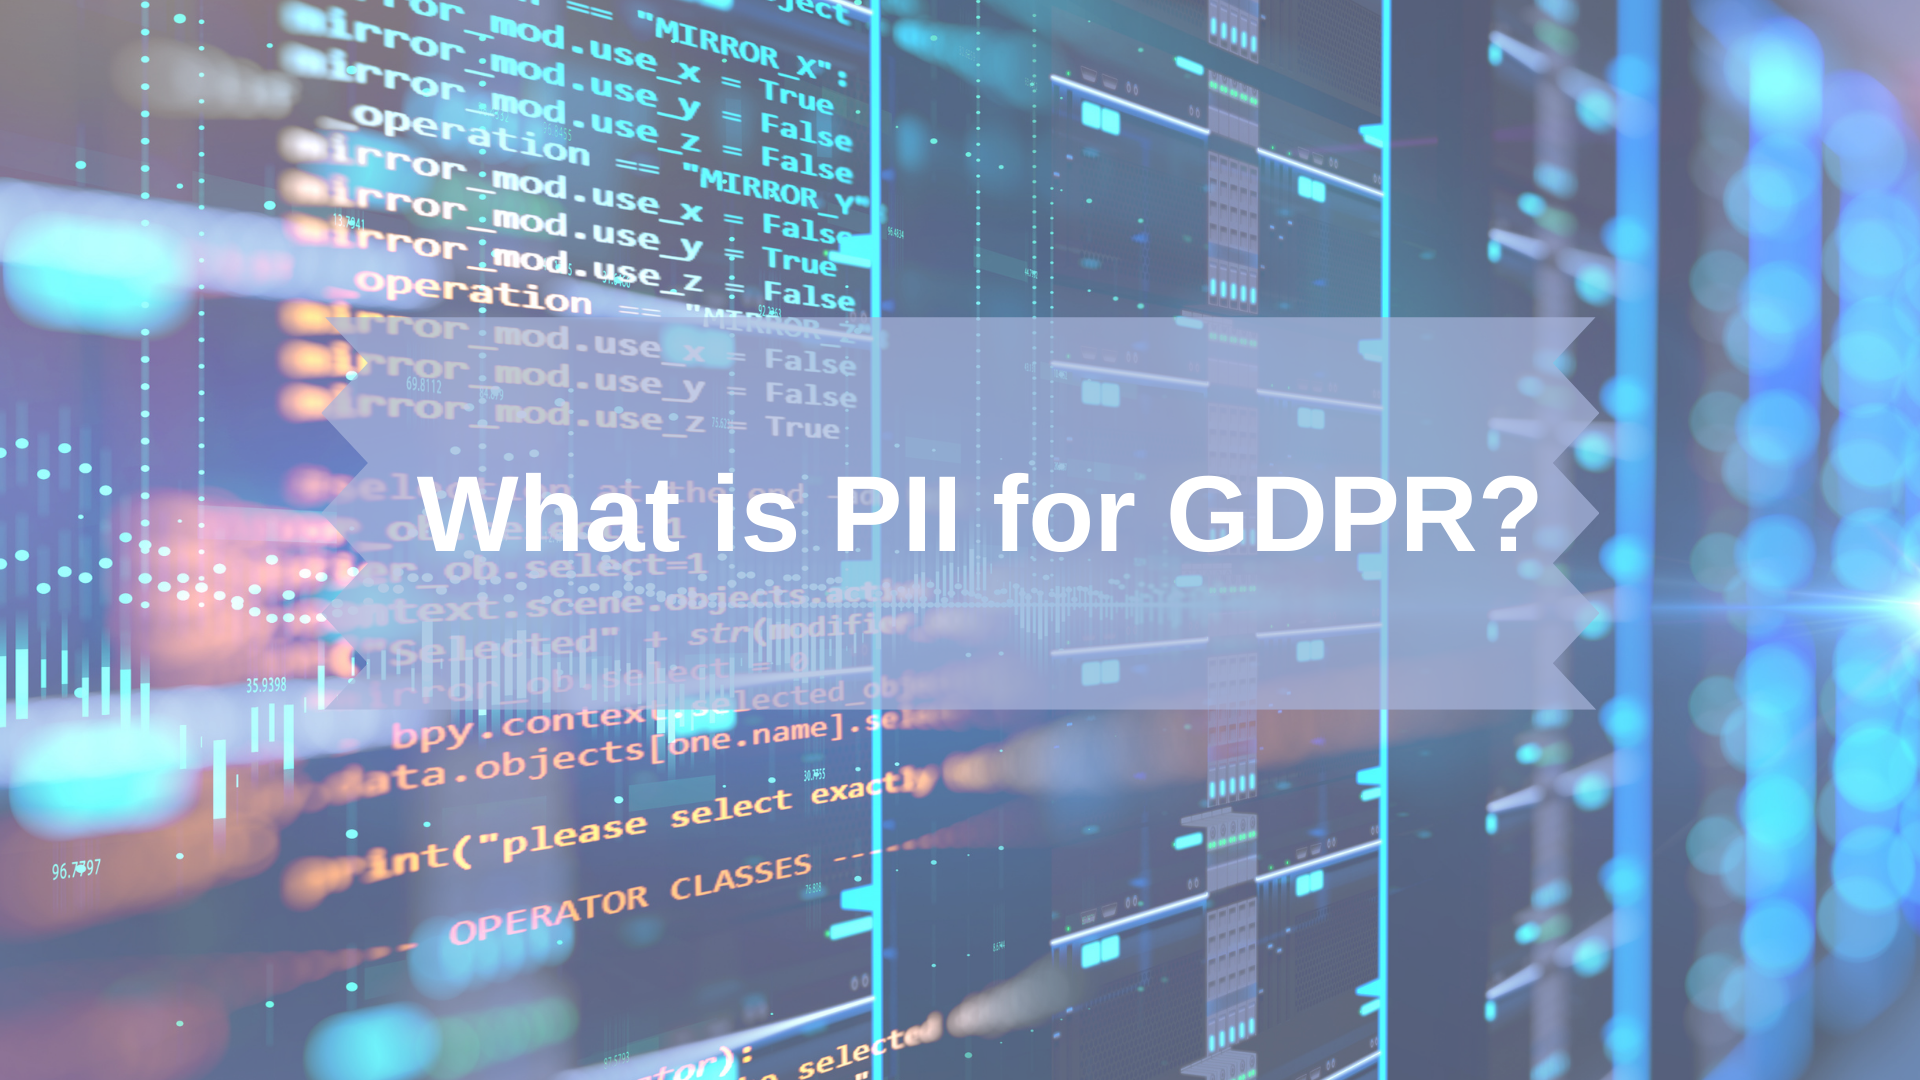 https://www.groundlabs.com/wp-content/uploads/2018/12/What-is-PII-for-GDPR.png